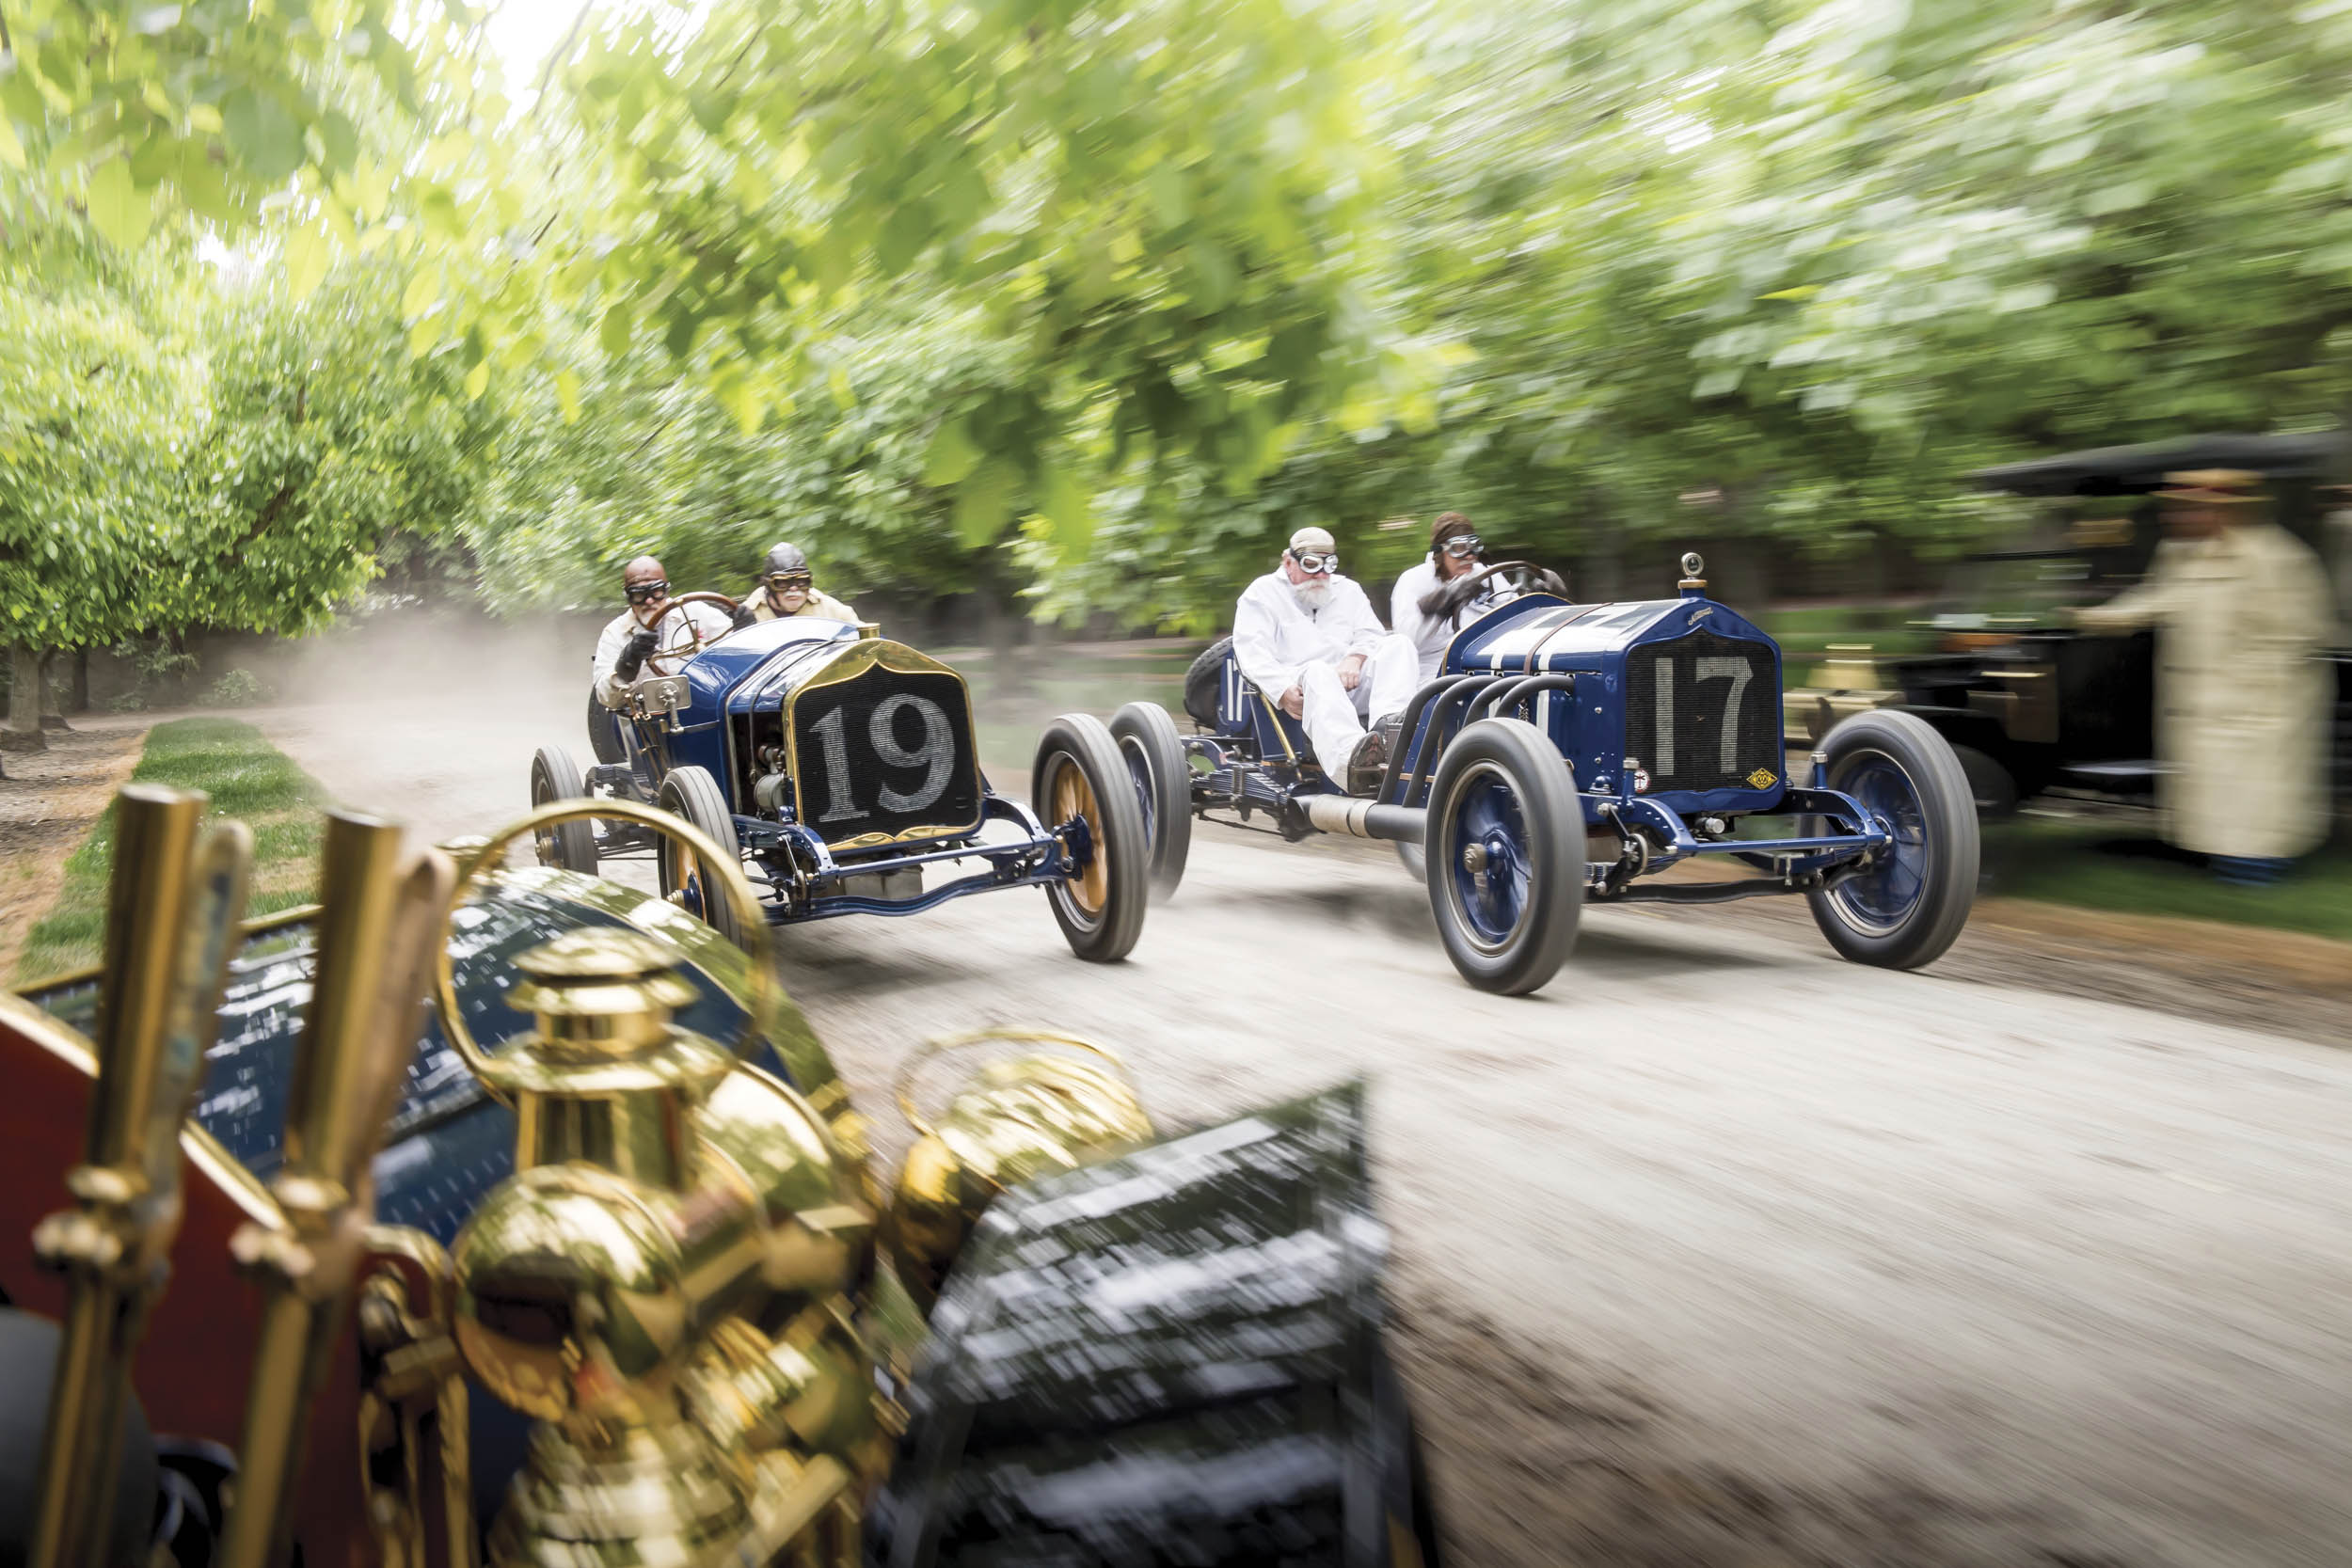 Blain's hometown of Visalia, California, hosted races back in the day, here re-created in a walnut orchard with a duo of century-old Nationals, a 1905 National (foreground), and a Ford Model T.